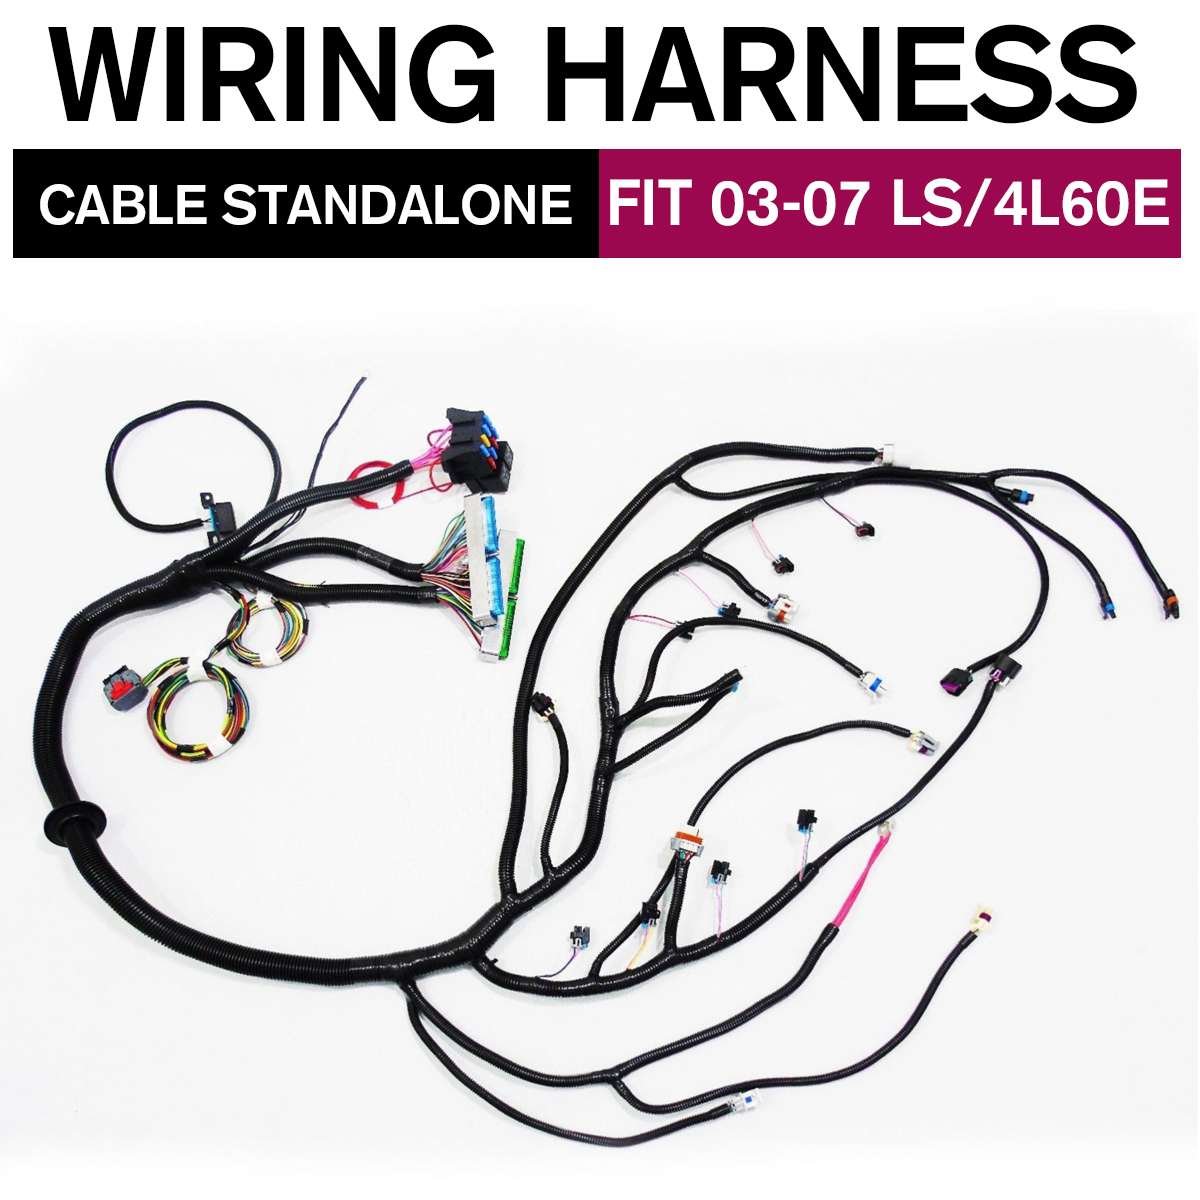 [DIAGRAM_38IS]  03 07 LS VORTEC STANDALONE WIRING HARNESS W/4L60E DBC 97 06 T56 WIRING  HARNESS Drive By Wire 4.8 5.3 6.0 3 Types|Cables, Adapters & Sockets| -  AliExpress | T56 Wiring Harness |  | AliExpress